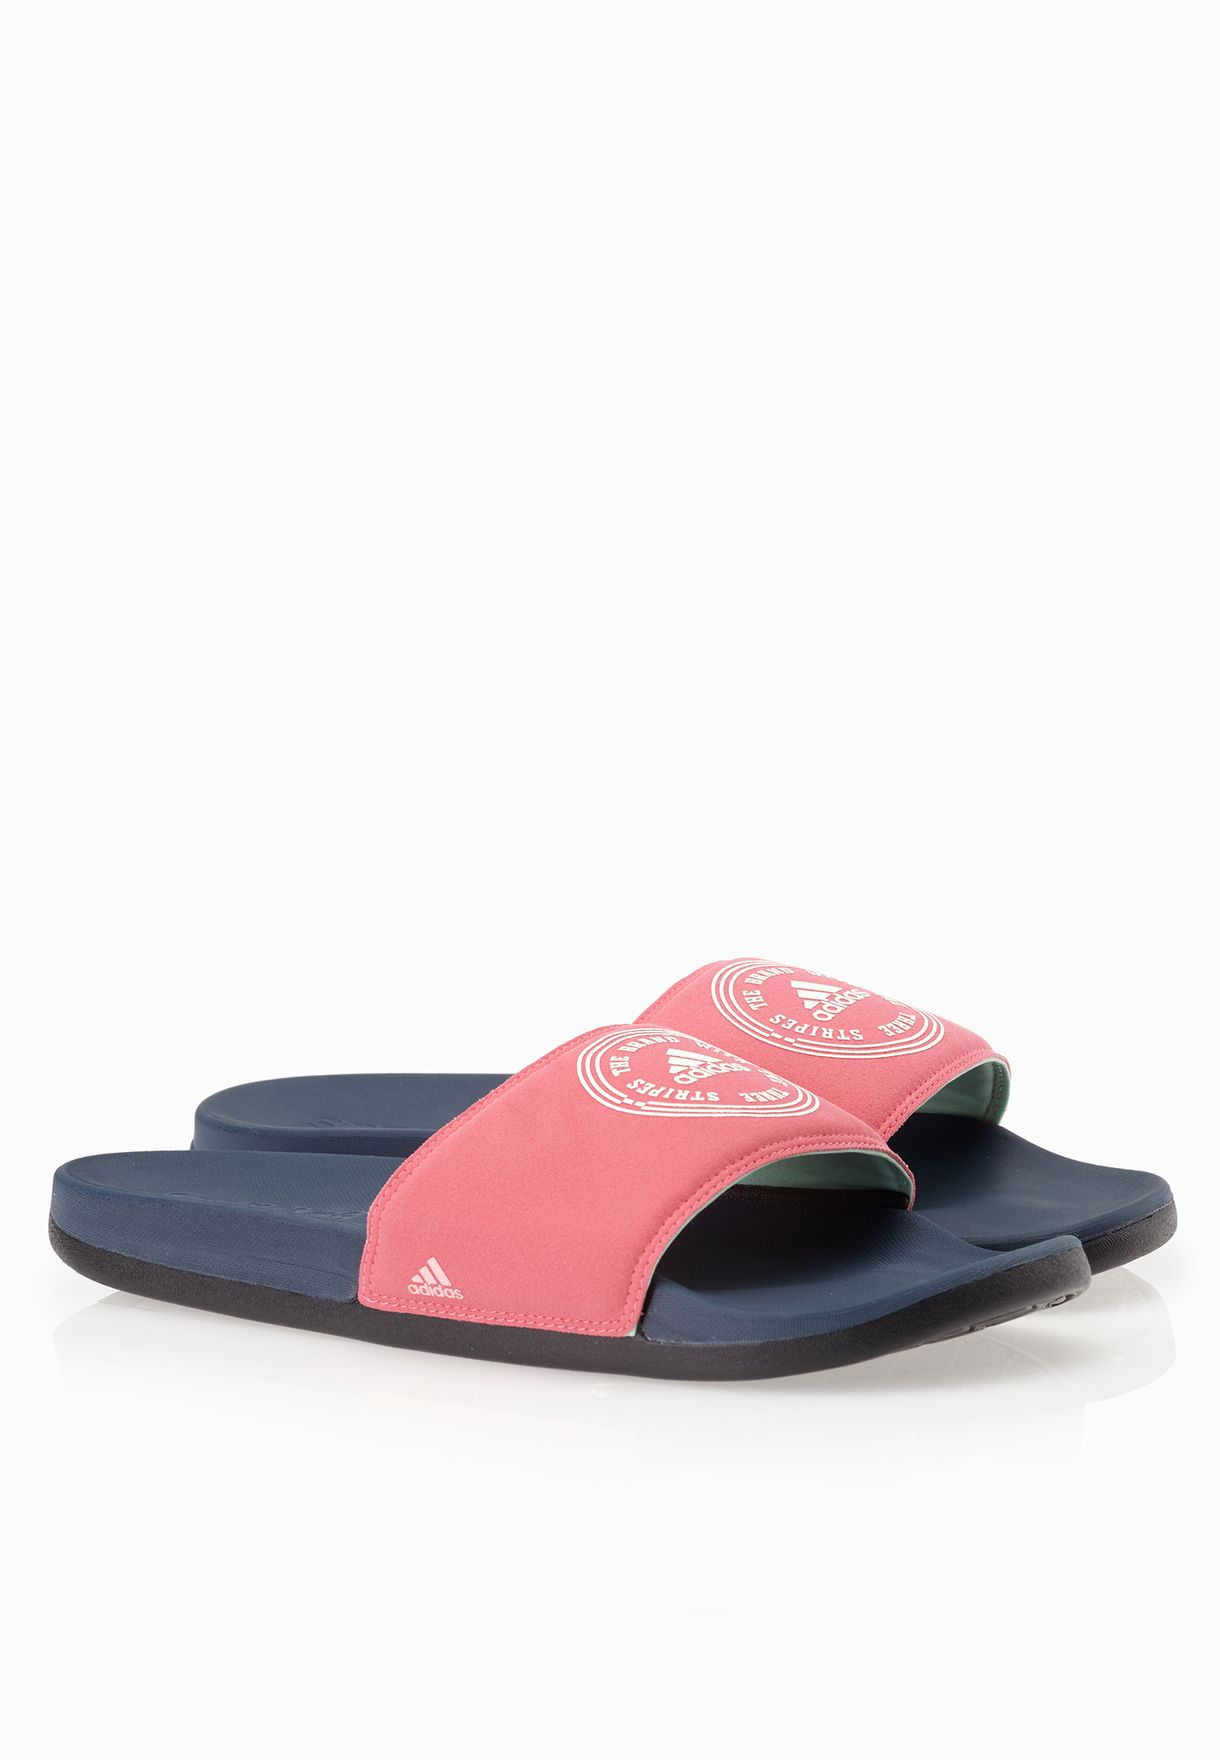 0963a147dde7 Shop adidas pink Adilette Supercloud Plus GR Slides S82943 for Women ...